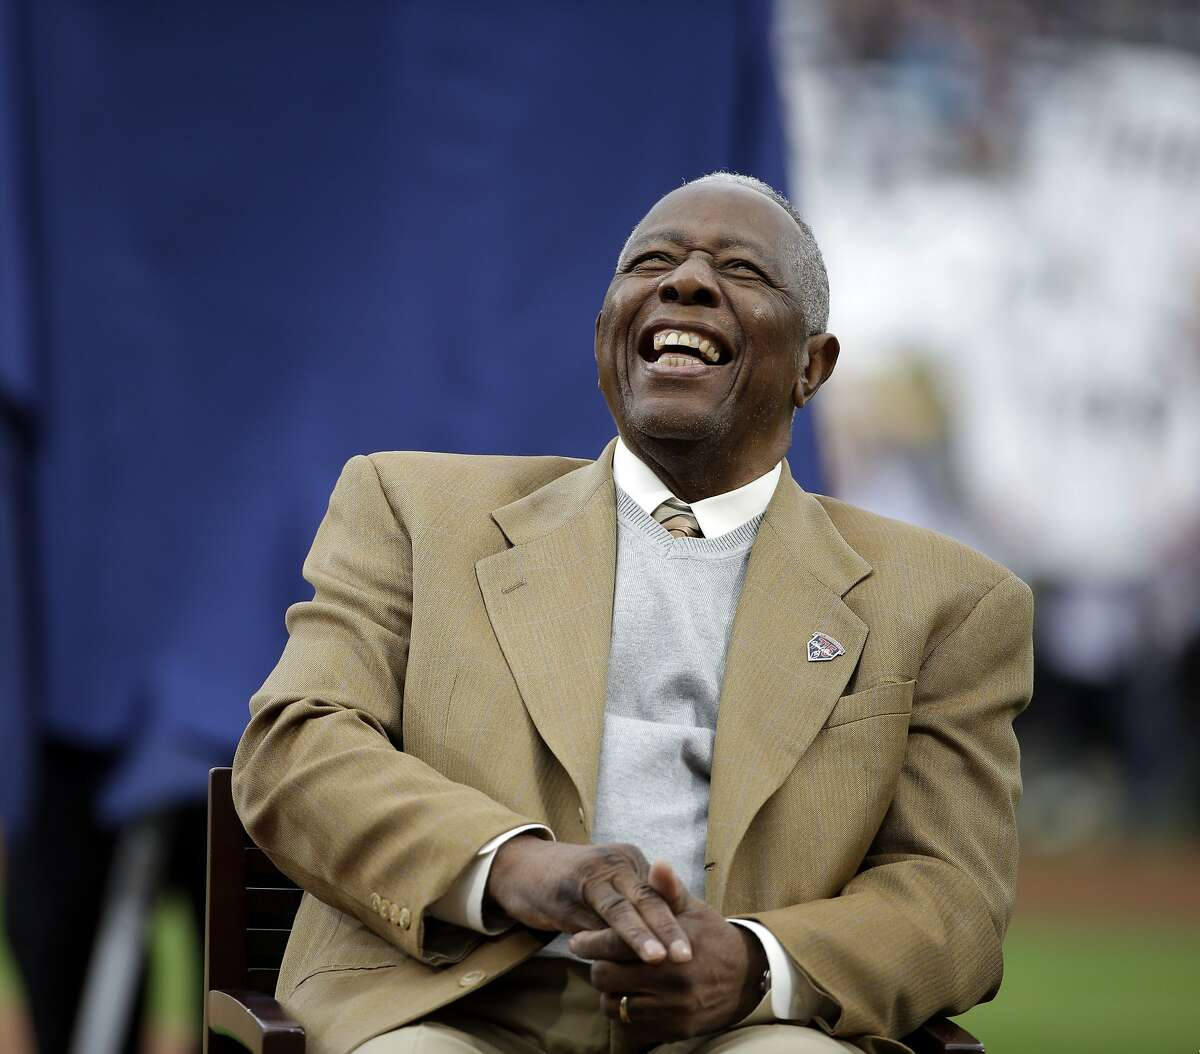 FILE- In this April 8, 2014, file photo, Hank Aaron laughs during a ceremony celebrating the 40th anniversary of his 715th home run before the start of a baseball game between the Atlanta Braves and the New York Mets in Atlanta. Hank Aaron, who endured racist threats with stoic dignity during his pursuit of Babe Ruth but went on to break the career home run record in the pre-steroids era, died early Friday, Jan. 22, 2021. He was 86. The Atlanta Braves said Aaron died peacefully in his sleep. No cause of death was given. (AP Photo/David Goldman, File)